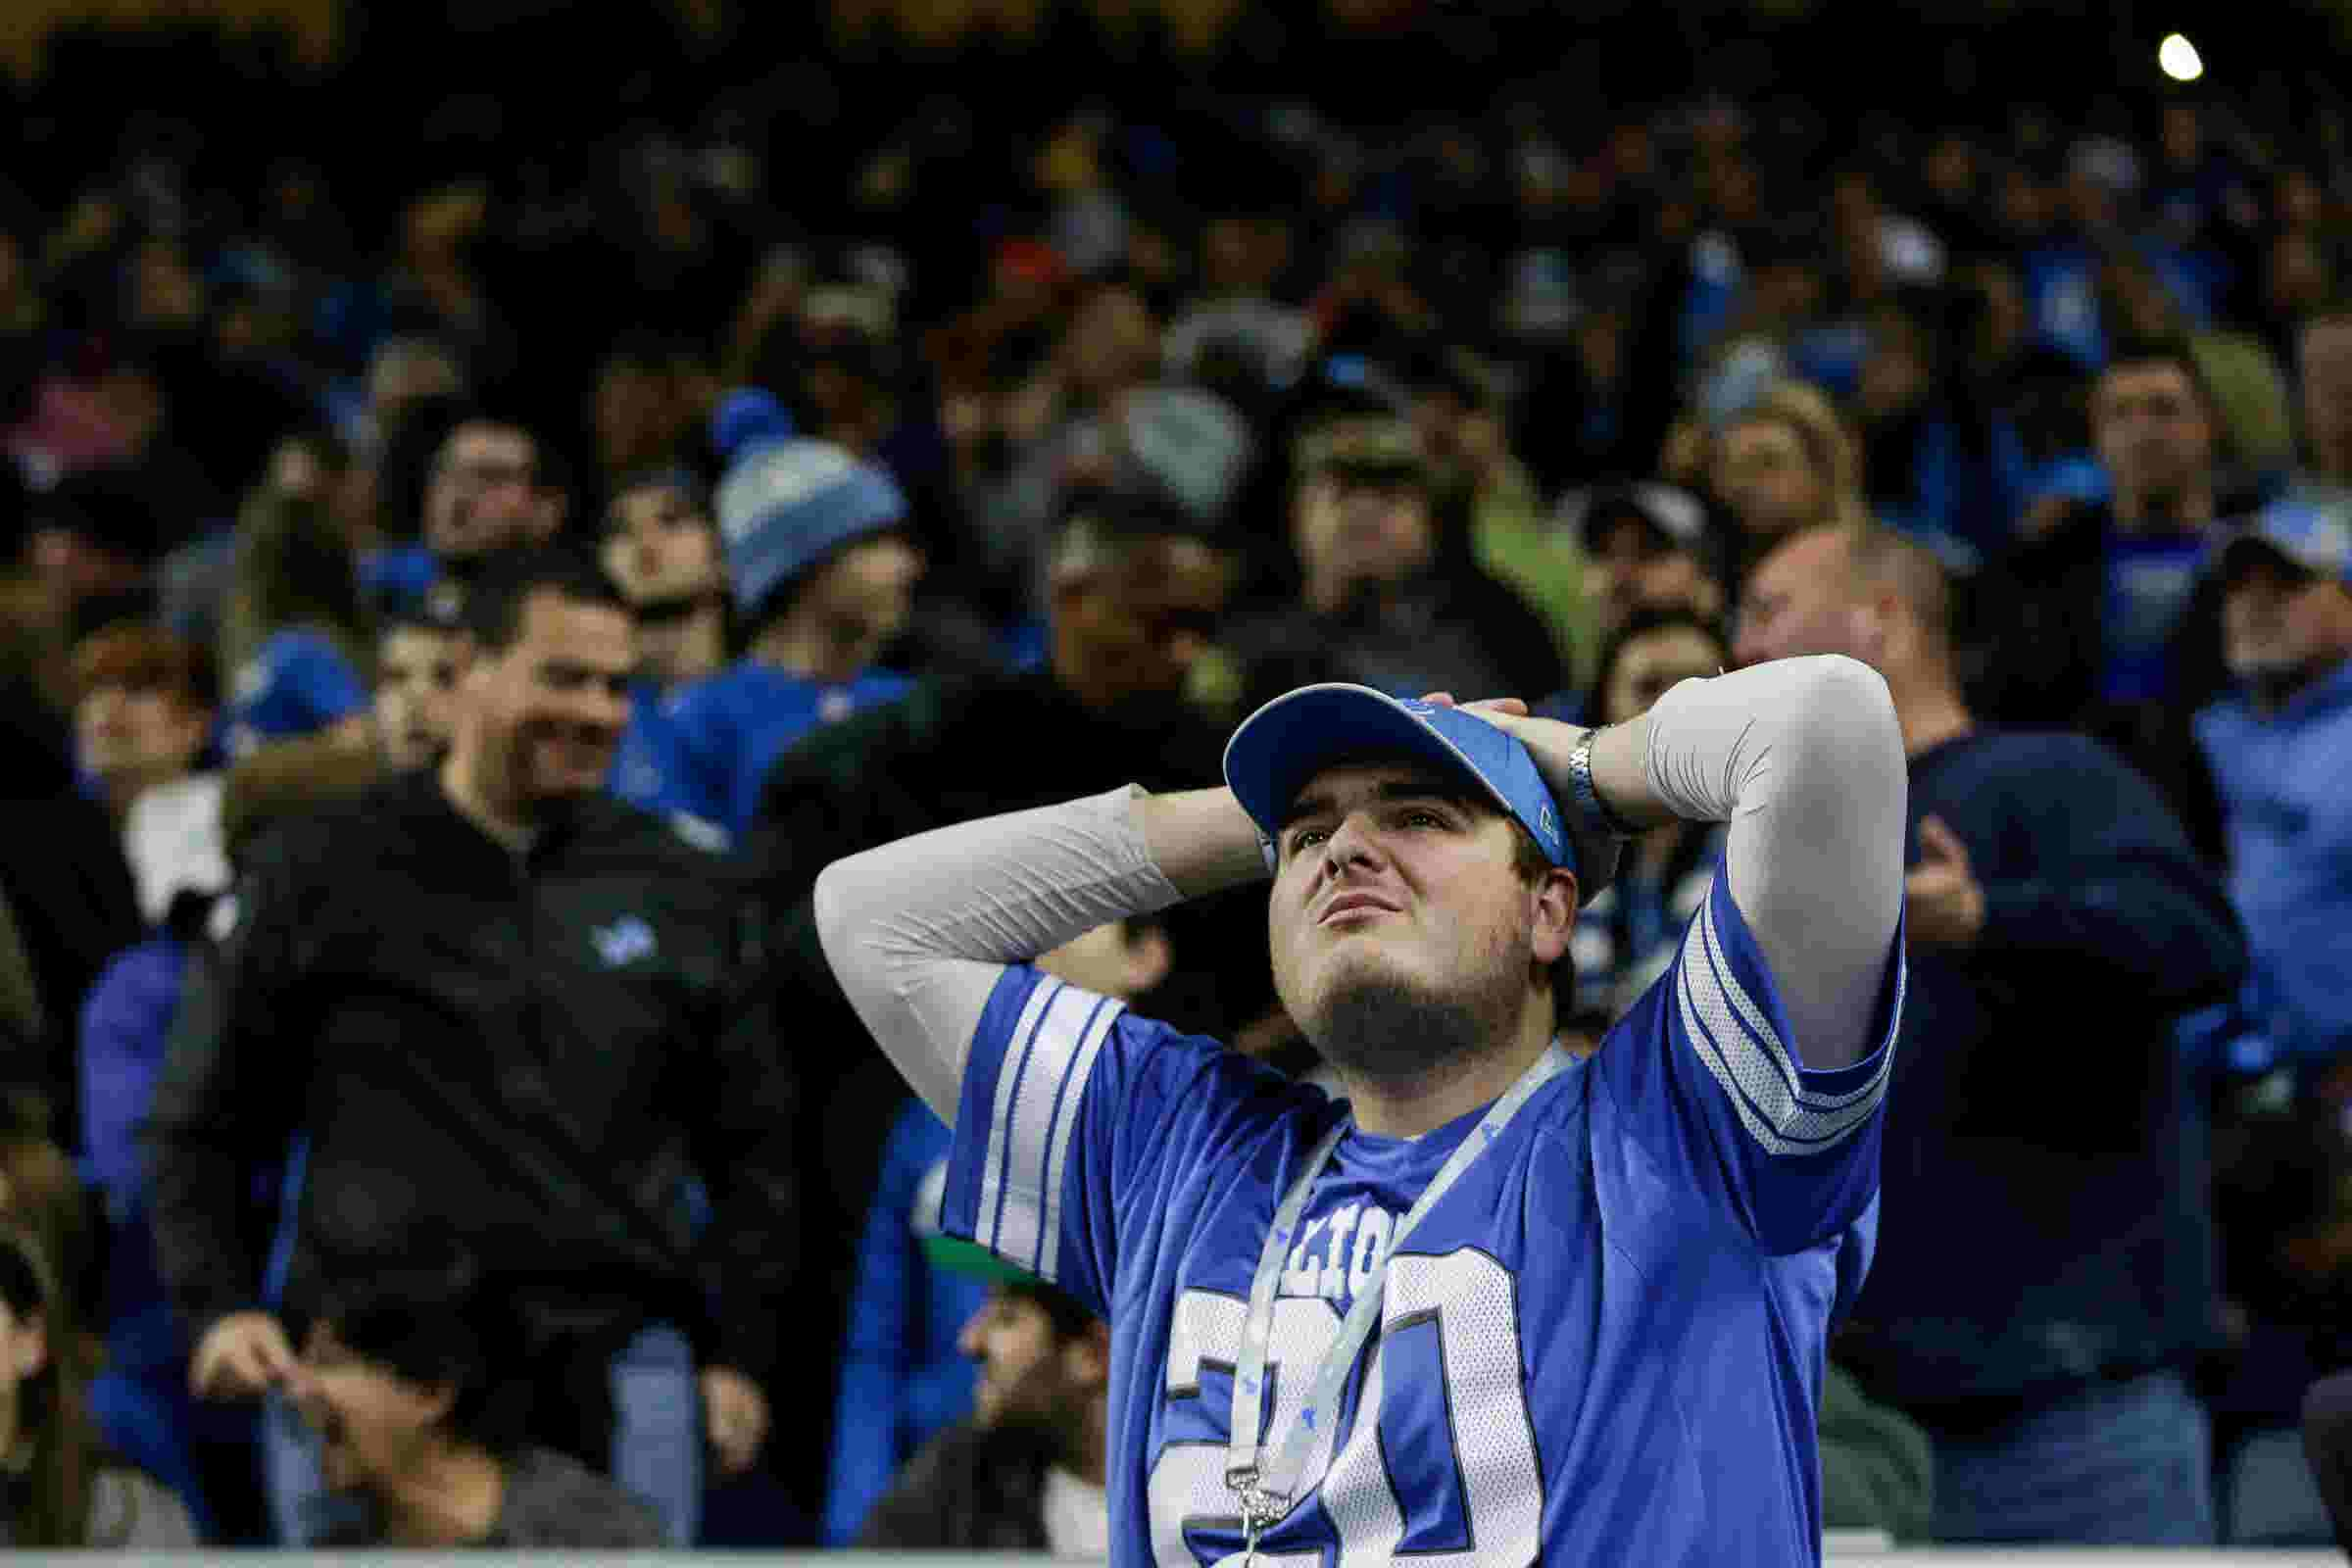 10,000 days after last playoff win, Lions fans tell us why they still care